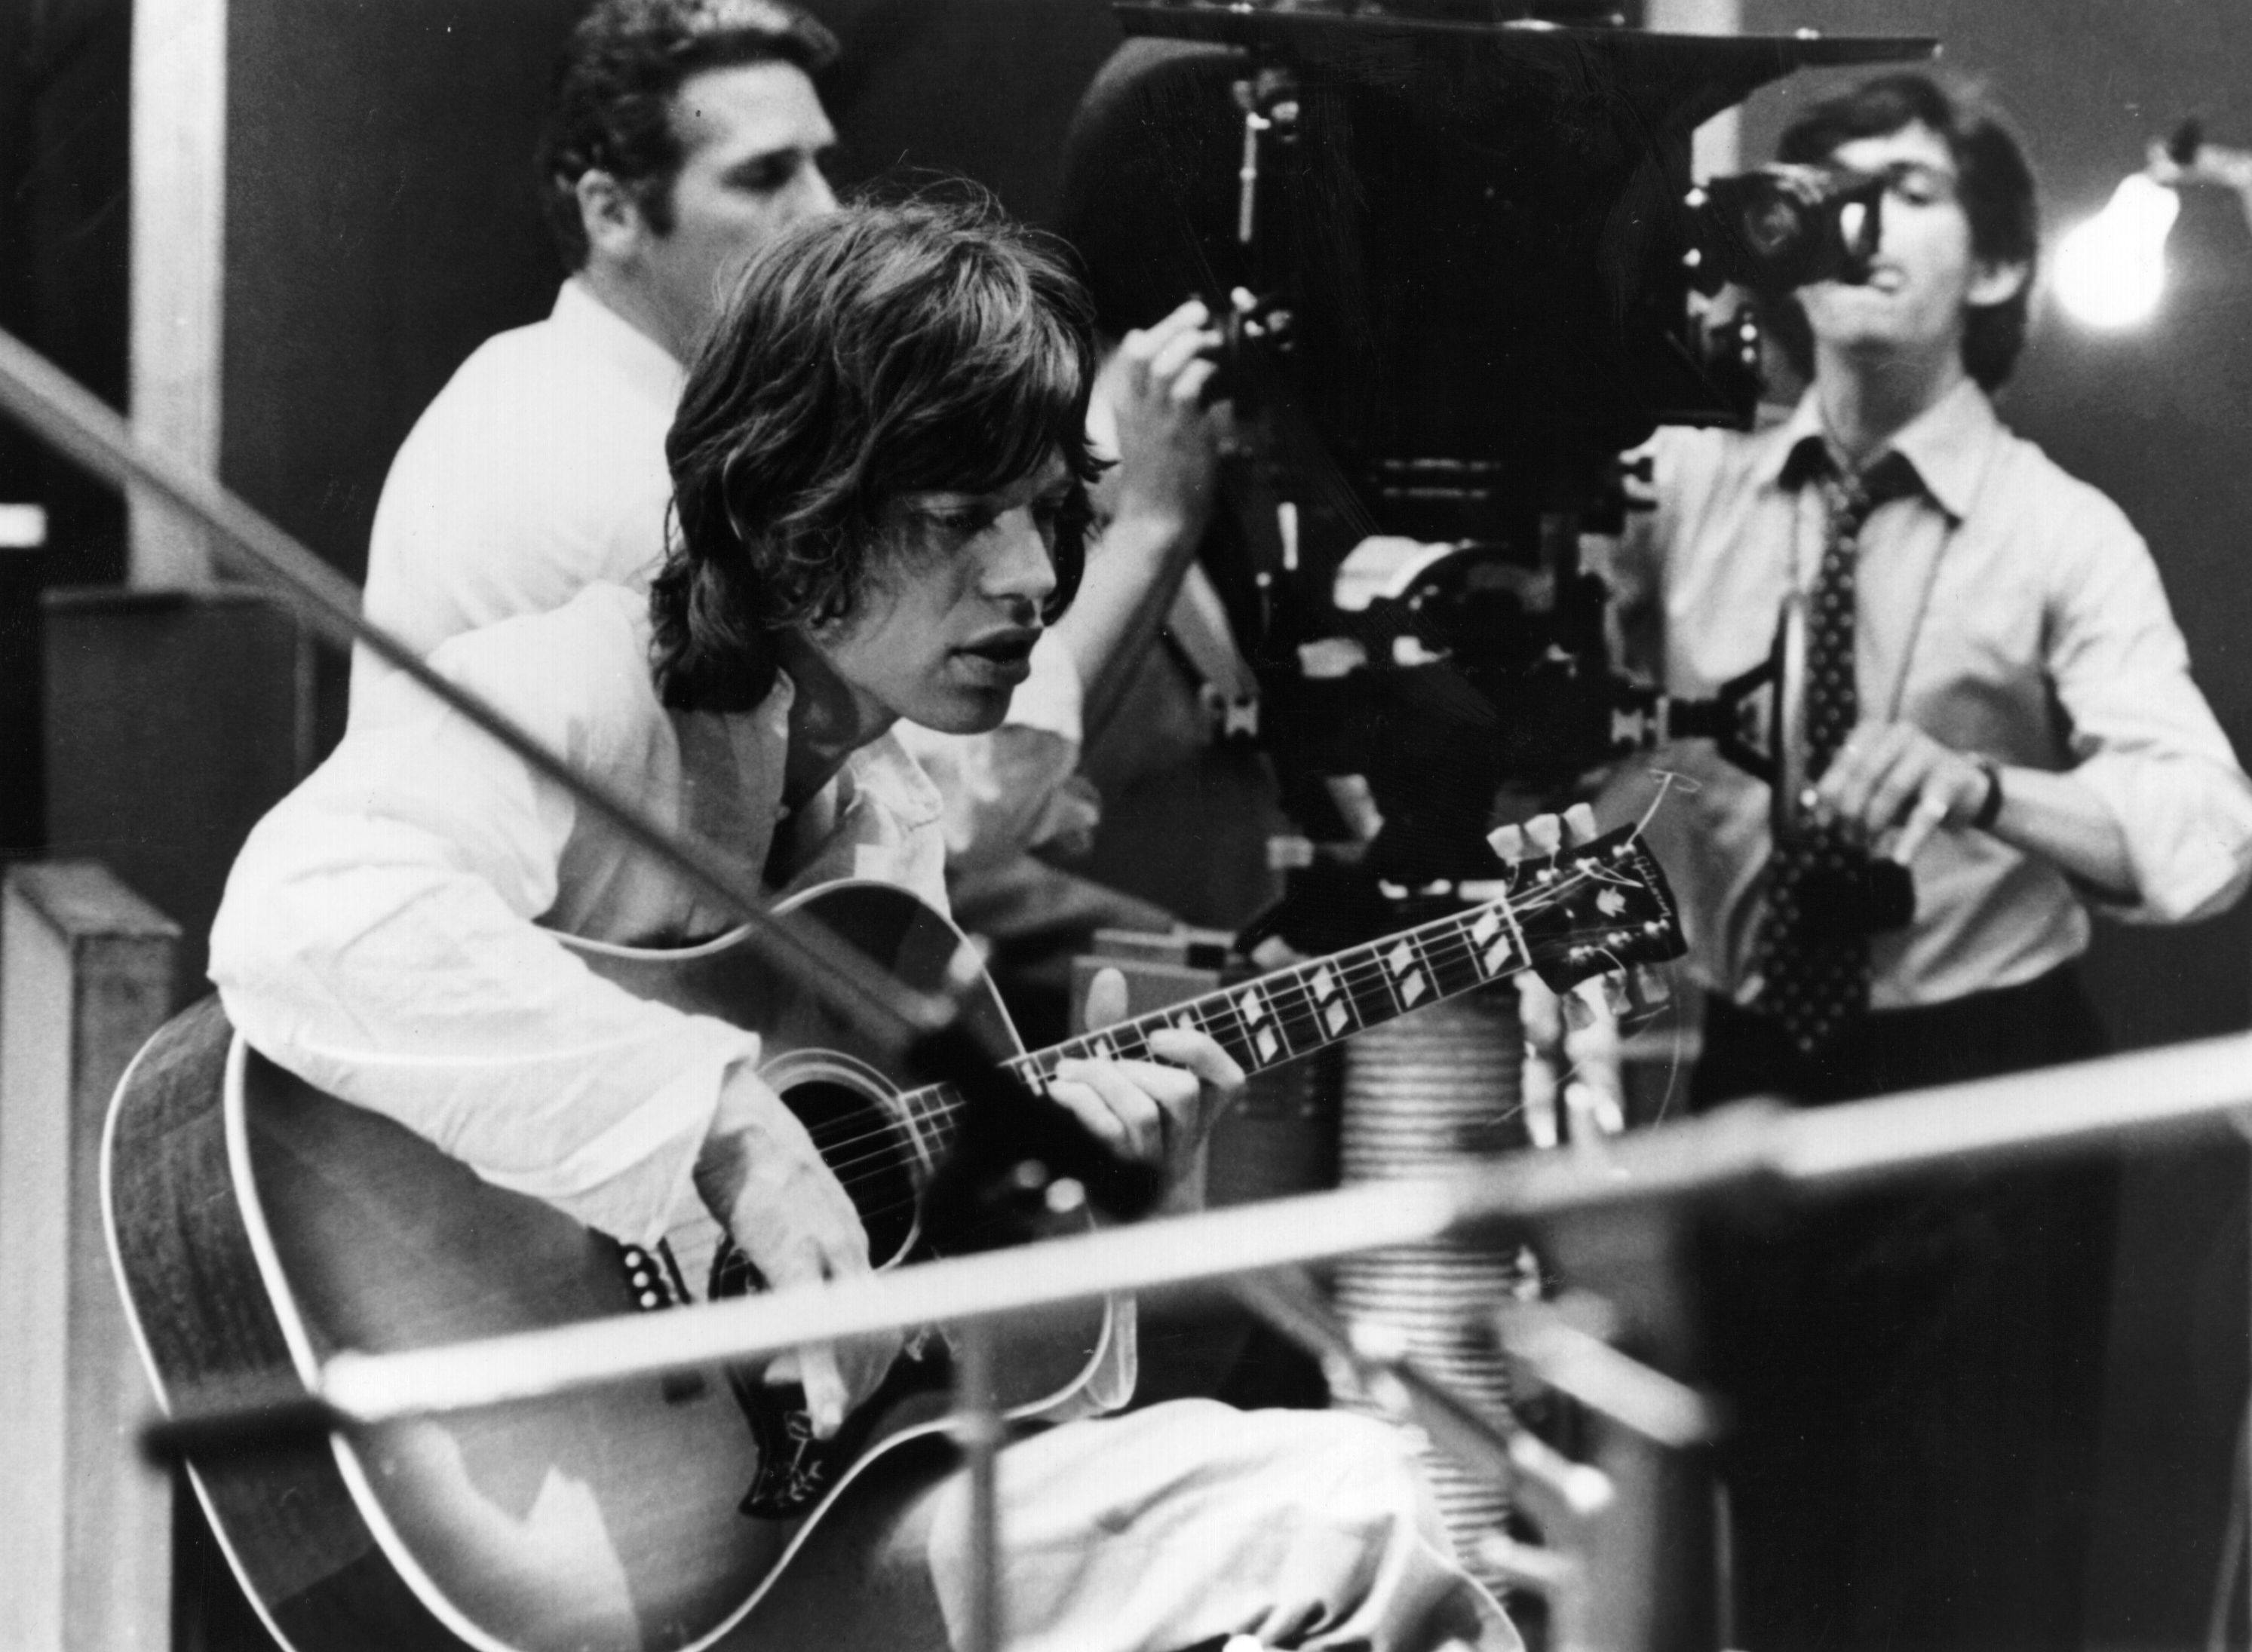 30th July 1968:  Mick Jagger, singer of British rock band the Rolling Stones plays an acoustic guitar in a recording studio d